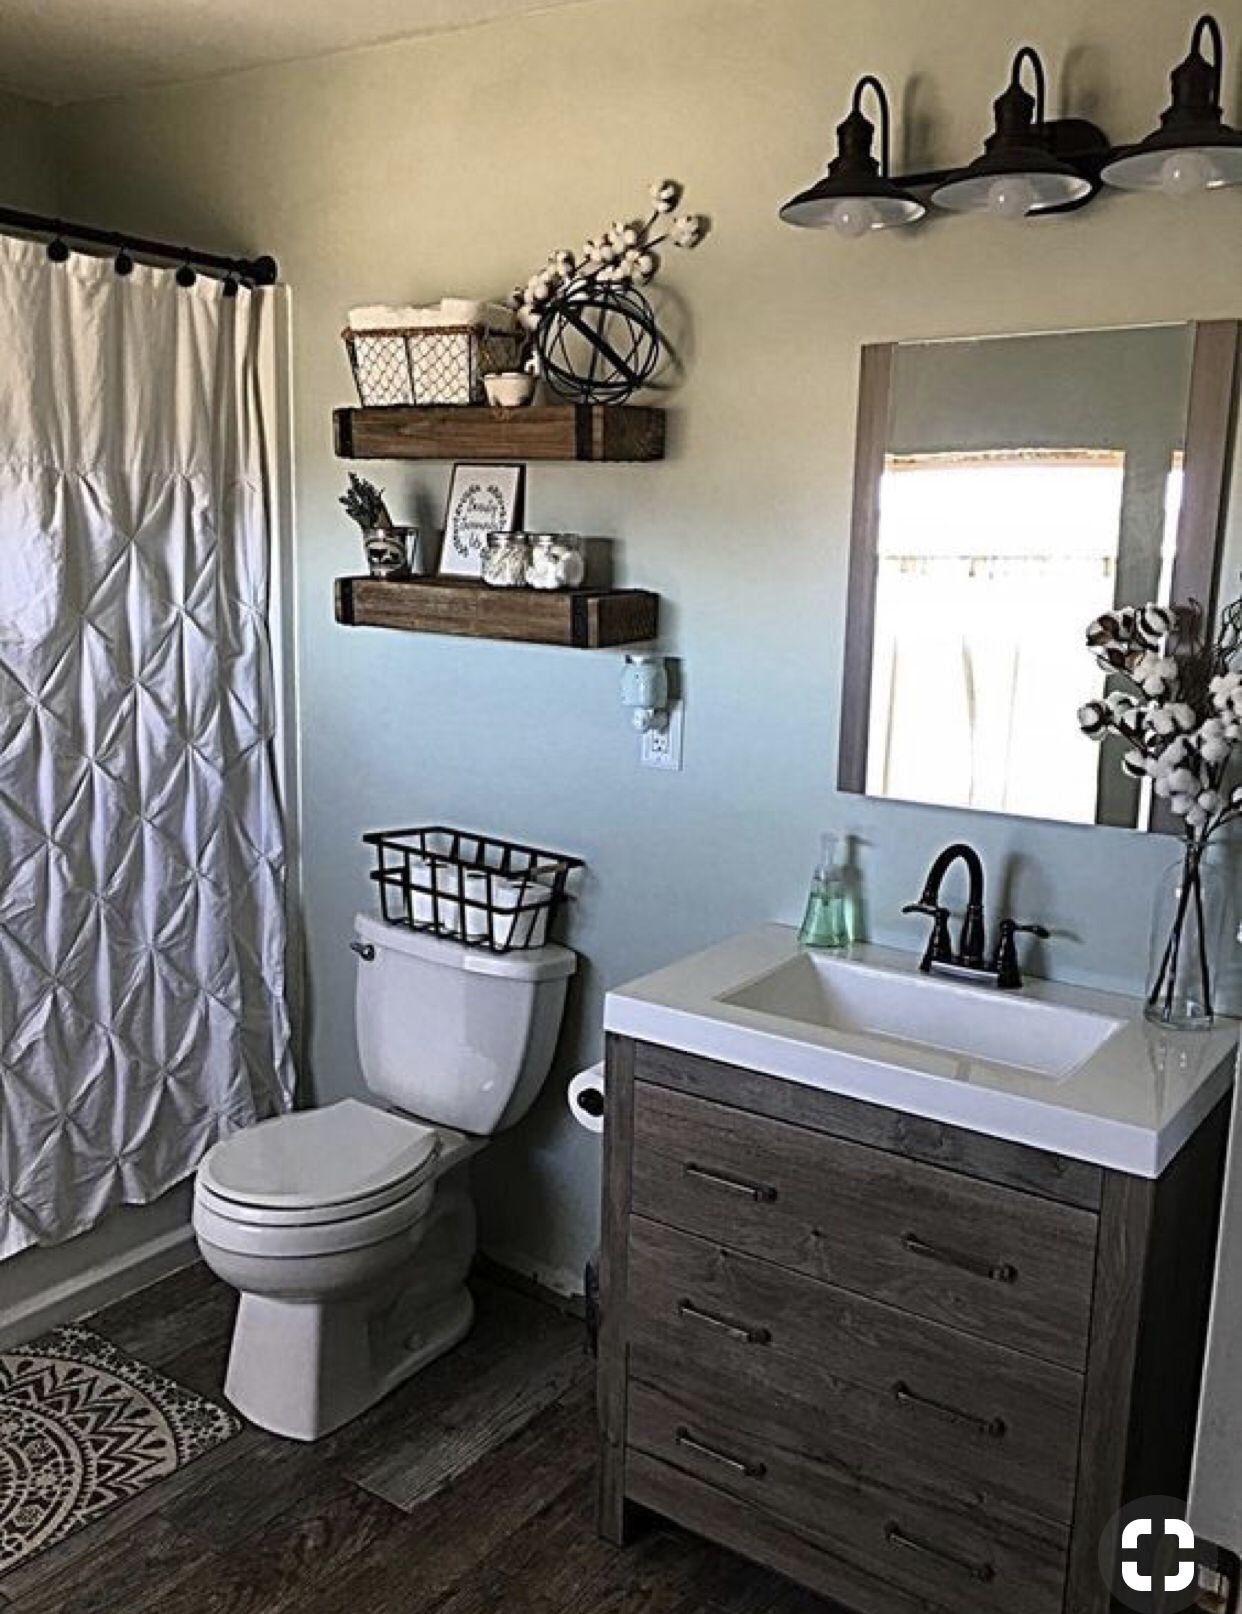 Masterbathroom Small Bathroom Decor Bathroom Makeovers On A Budget Small Bathroom Remodel